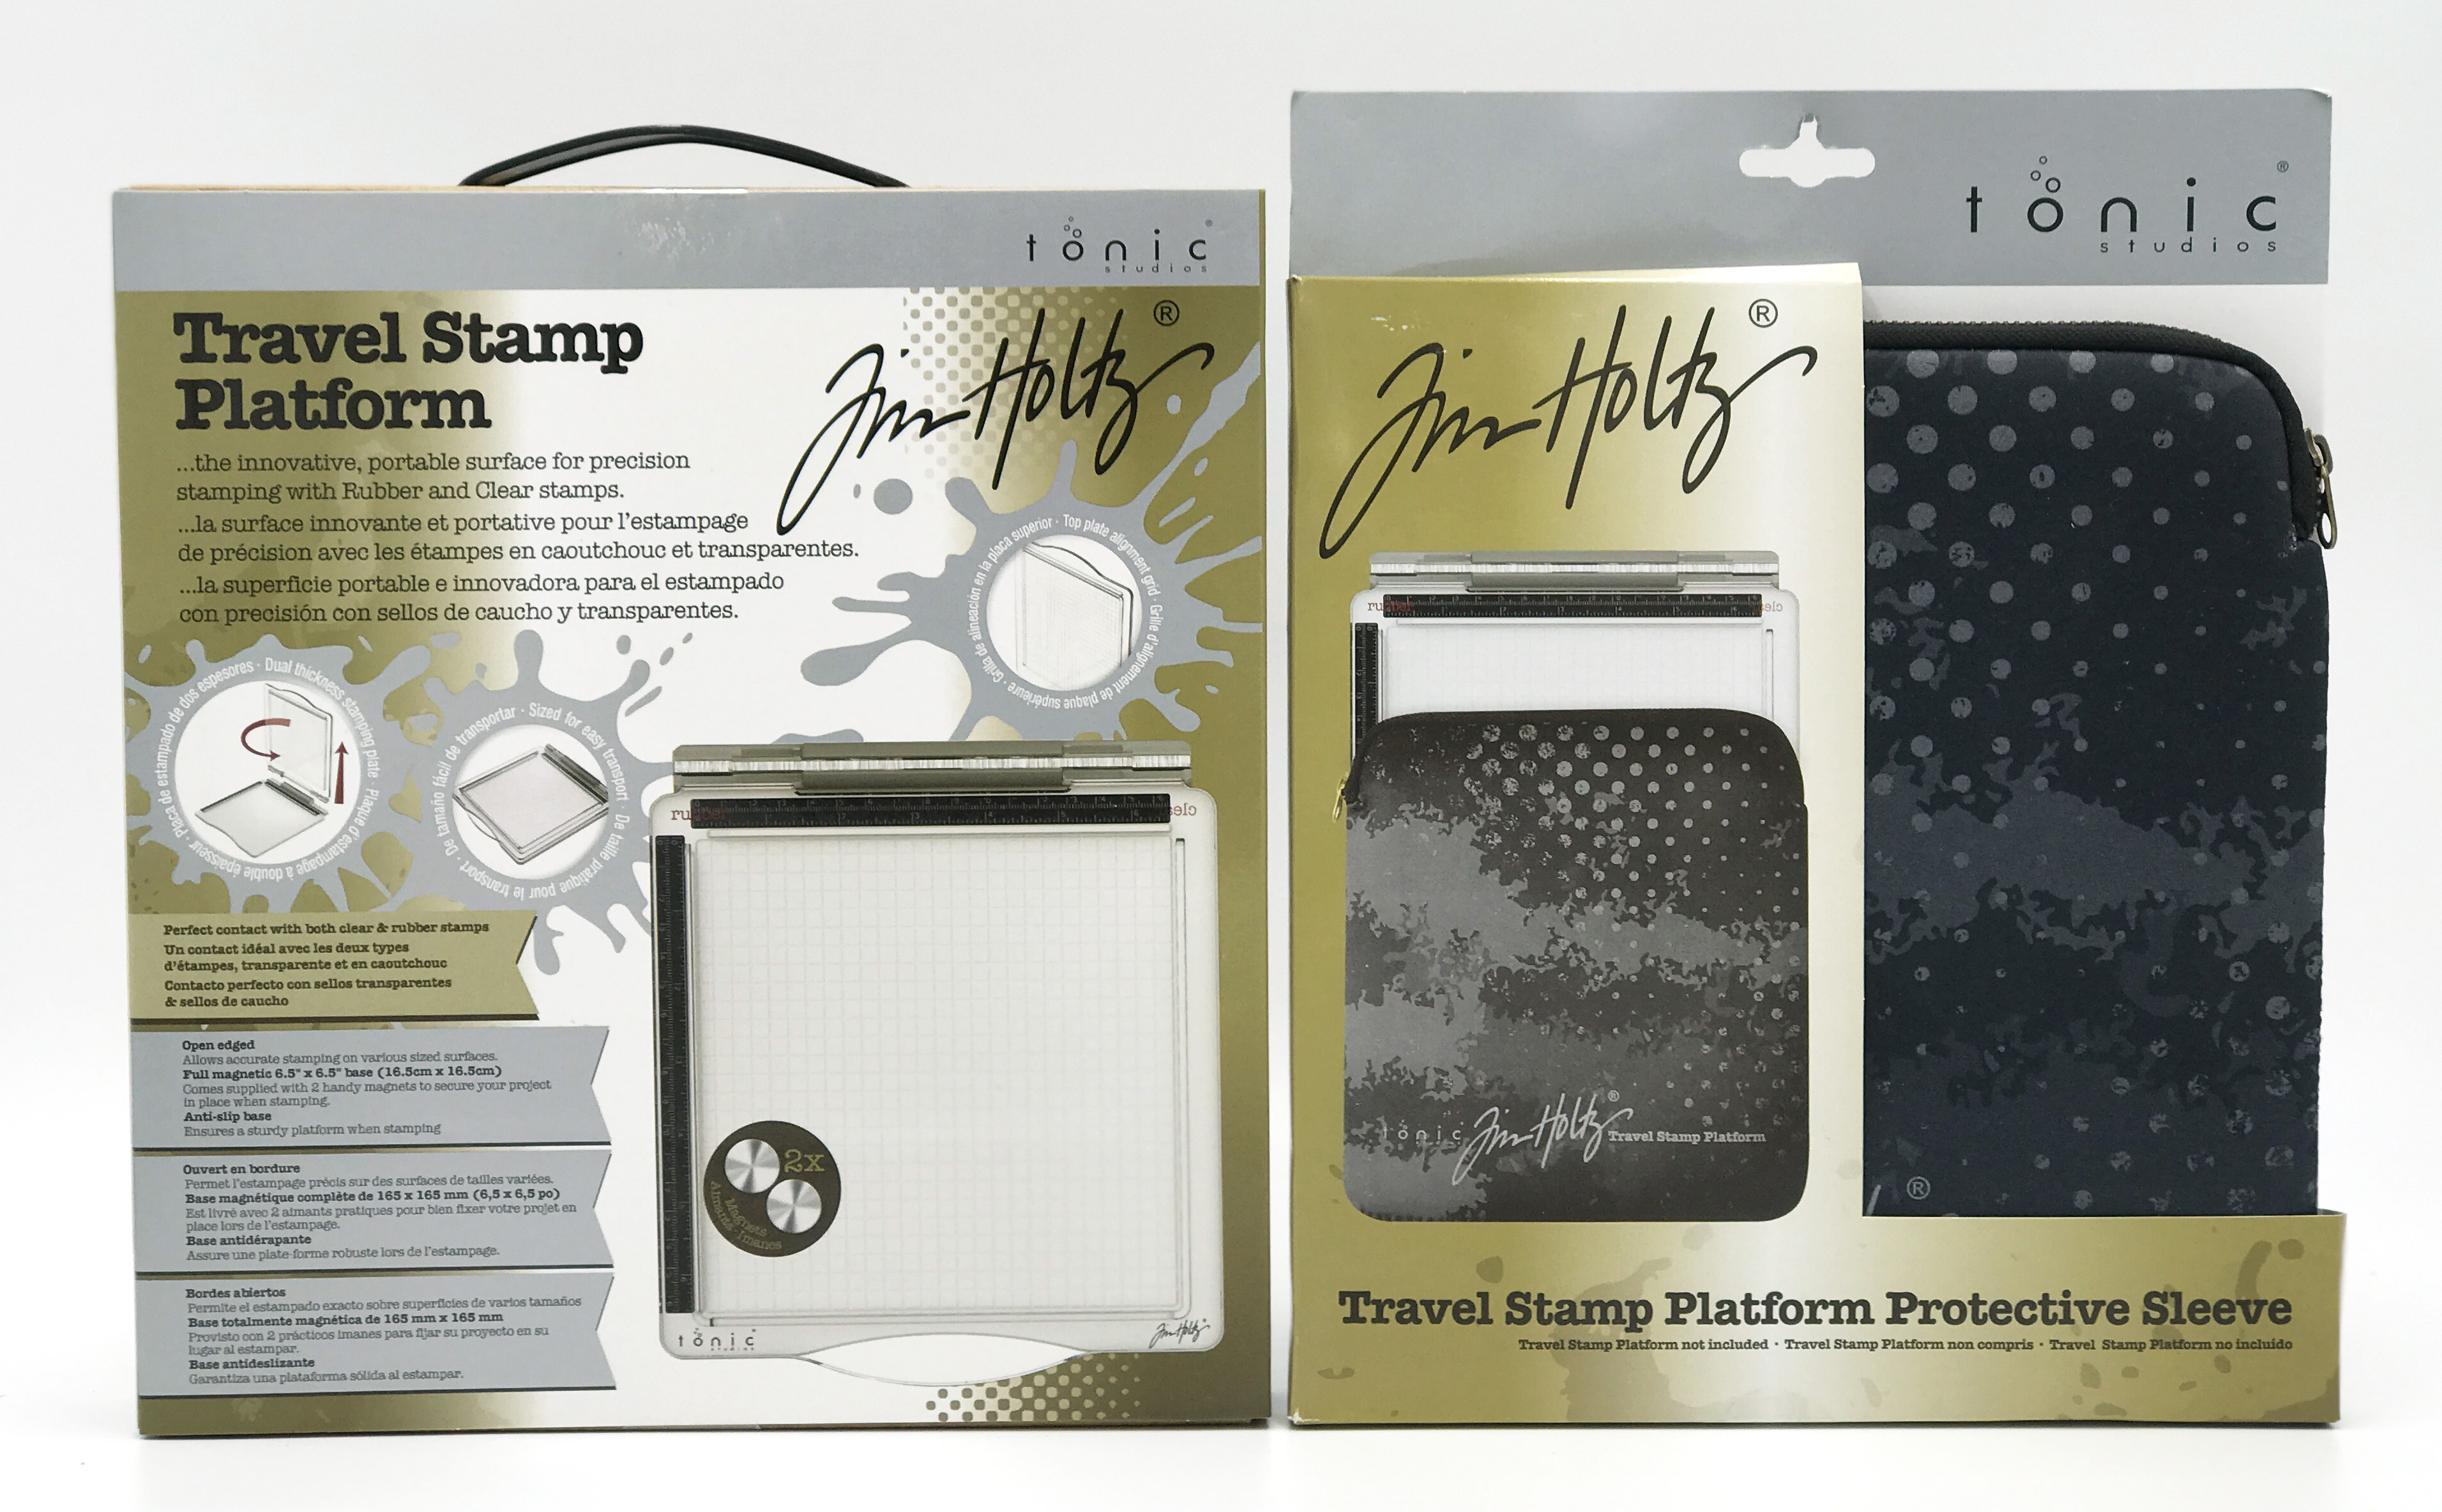 Tim Holtz Stamp Platform and Carrying Case Prize Package for 12 Days of Giving